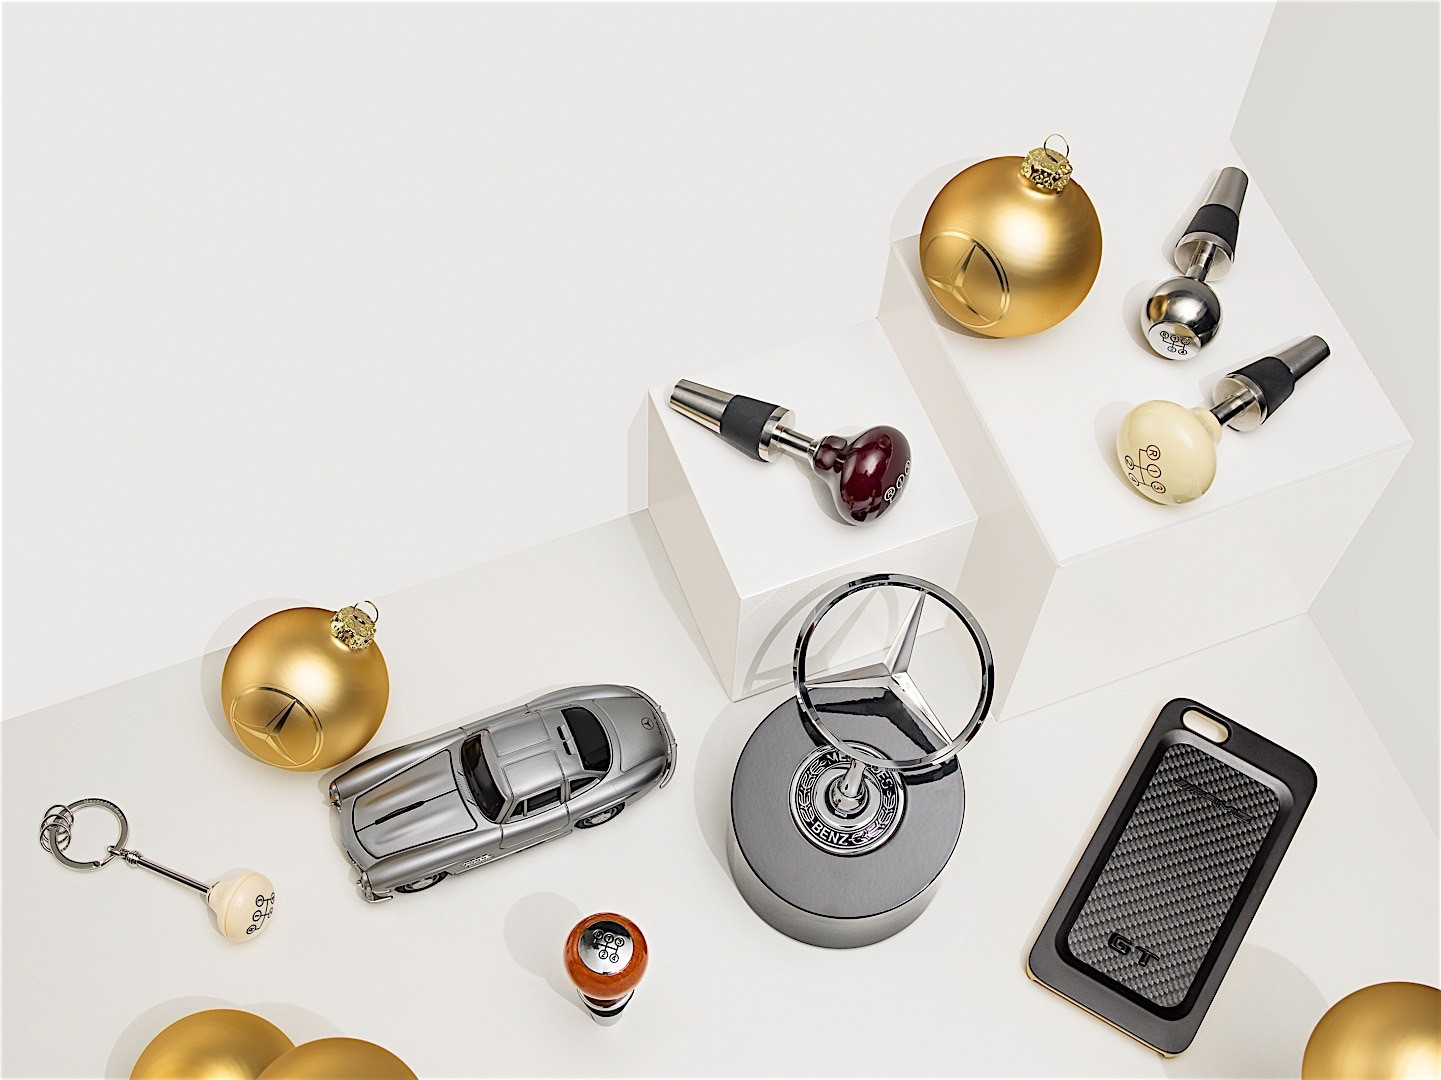 How To Put A Wallpaper On Your Car Mercedes Benz Tempts Santa With A Selection Of Gift Ideas